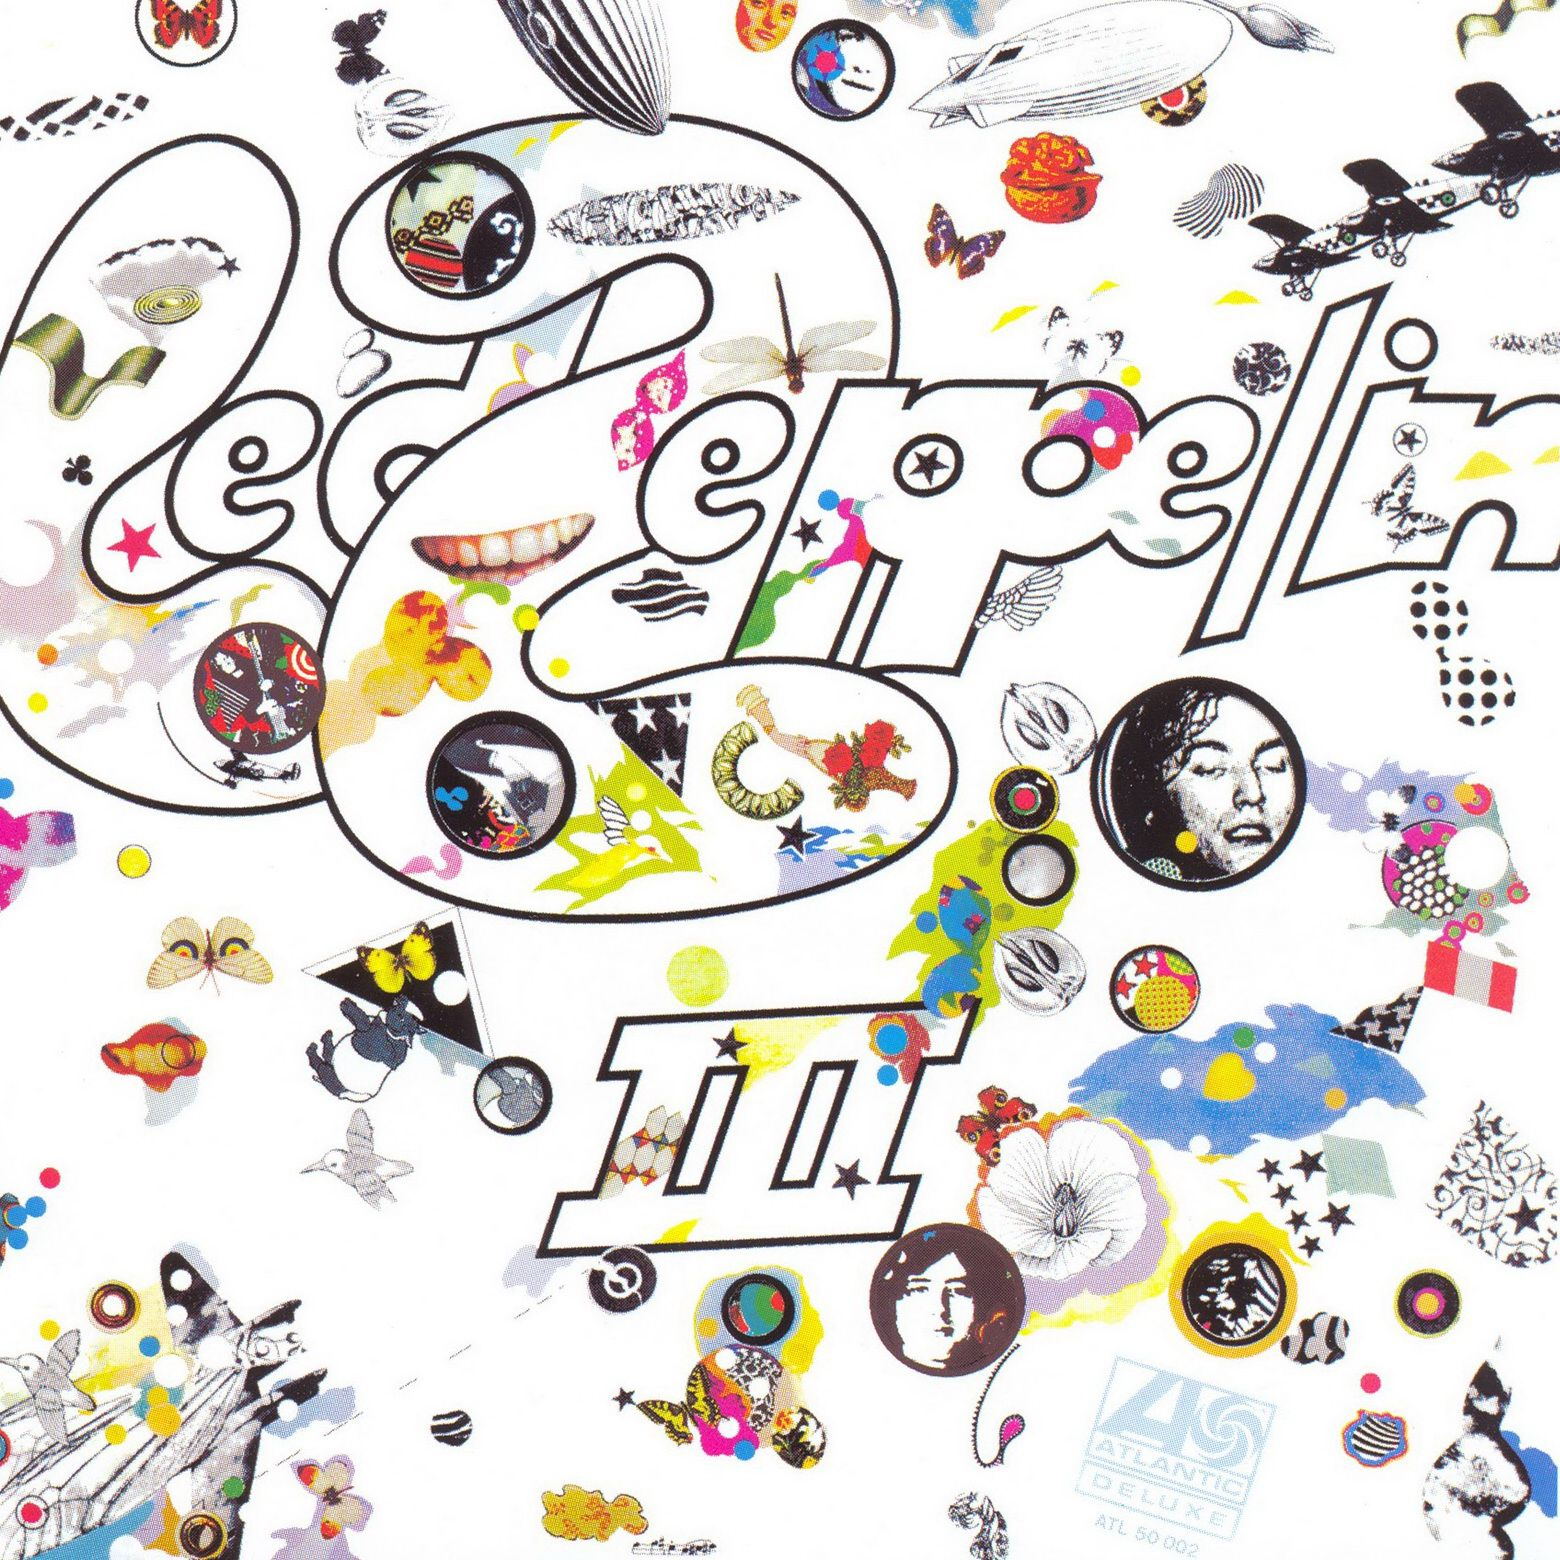 Led Zeppelin - Led Zeppelin 3 (remastered) album cover